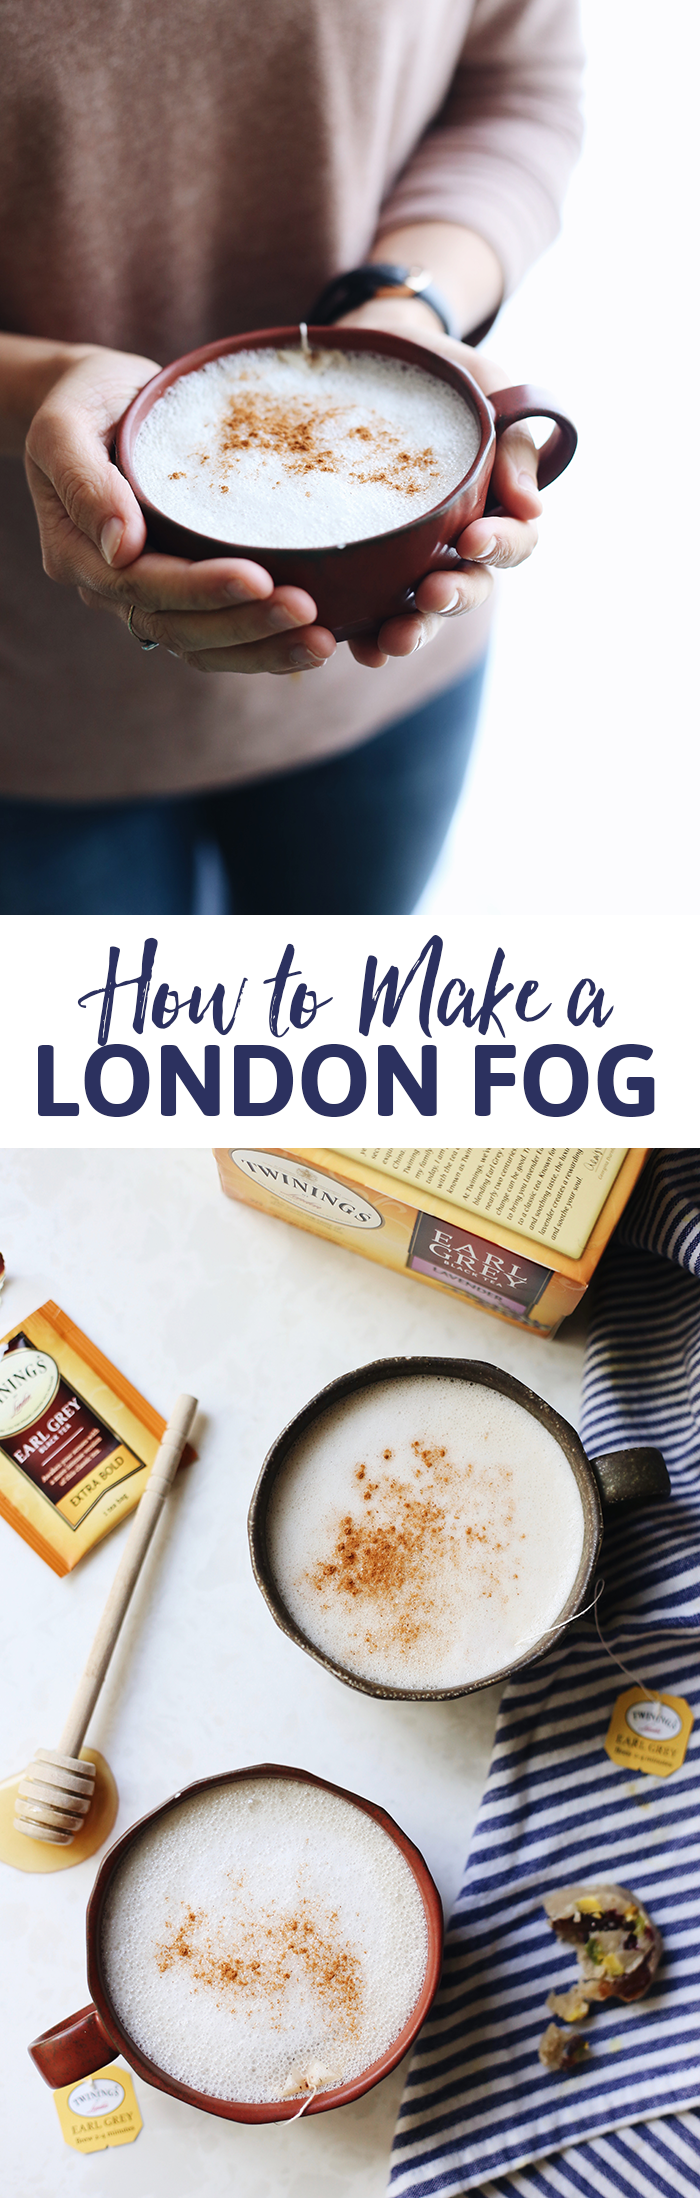 Have you ever wondered how to make a london fog its the ultimate have you ever wondered how to make a london fog its the ultimate tea latte recipe with a hint of sweetness and boost of caffeine solutioingenieria Images